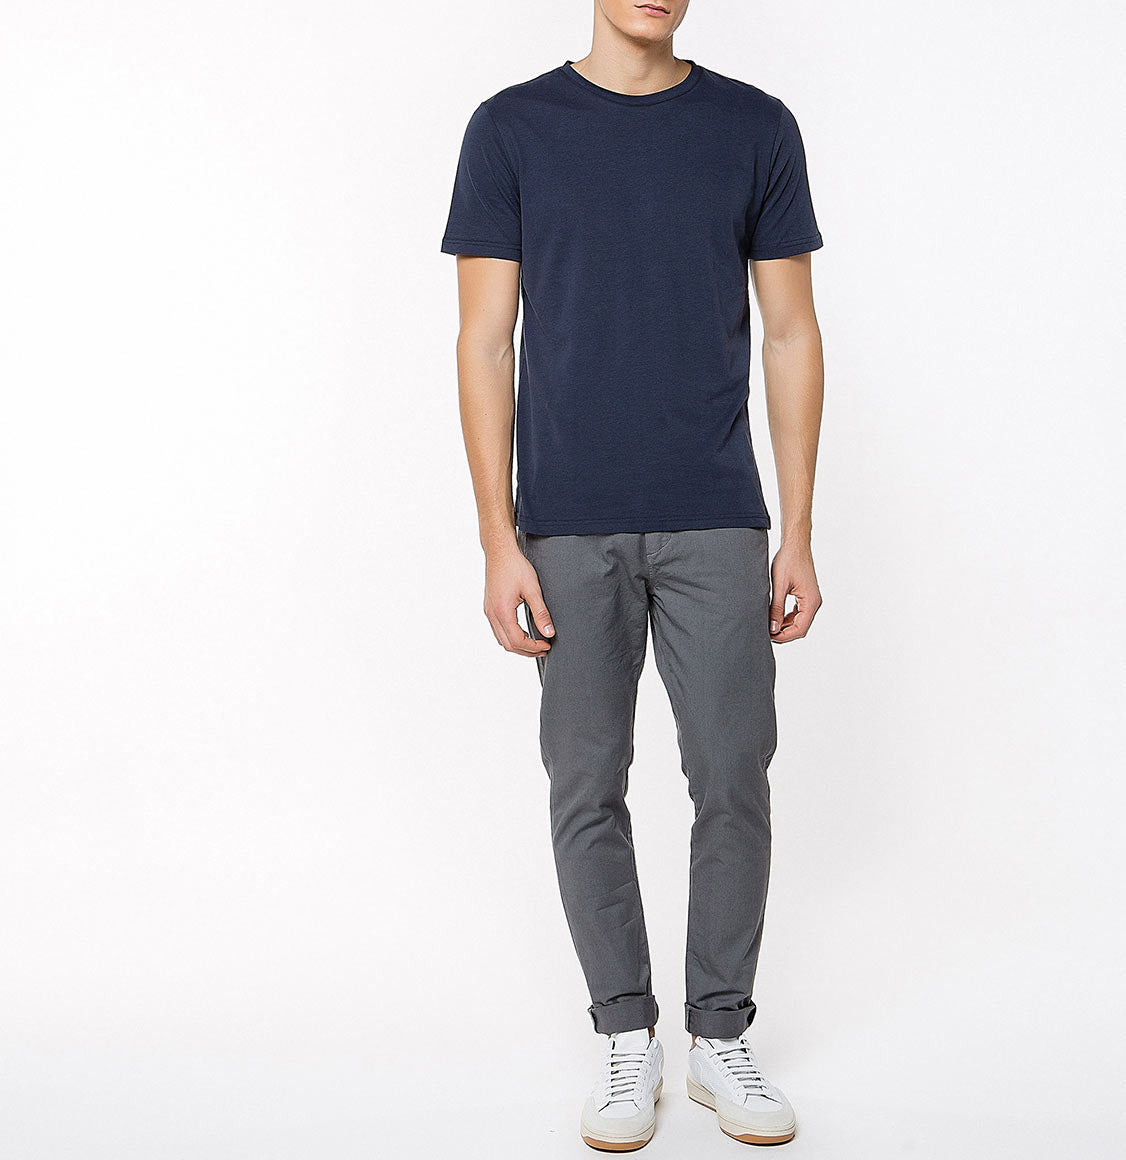 Crew Neck Supima Cotton T-shirt Navy Blue | The Project Garments - Model